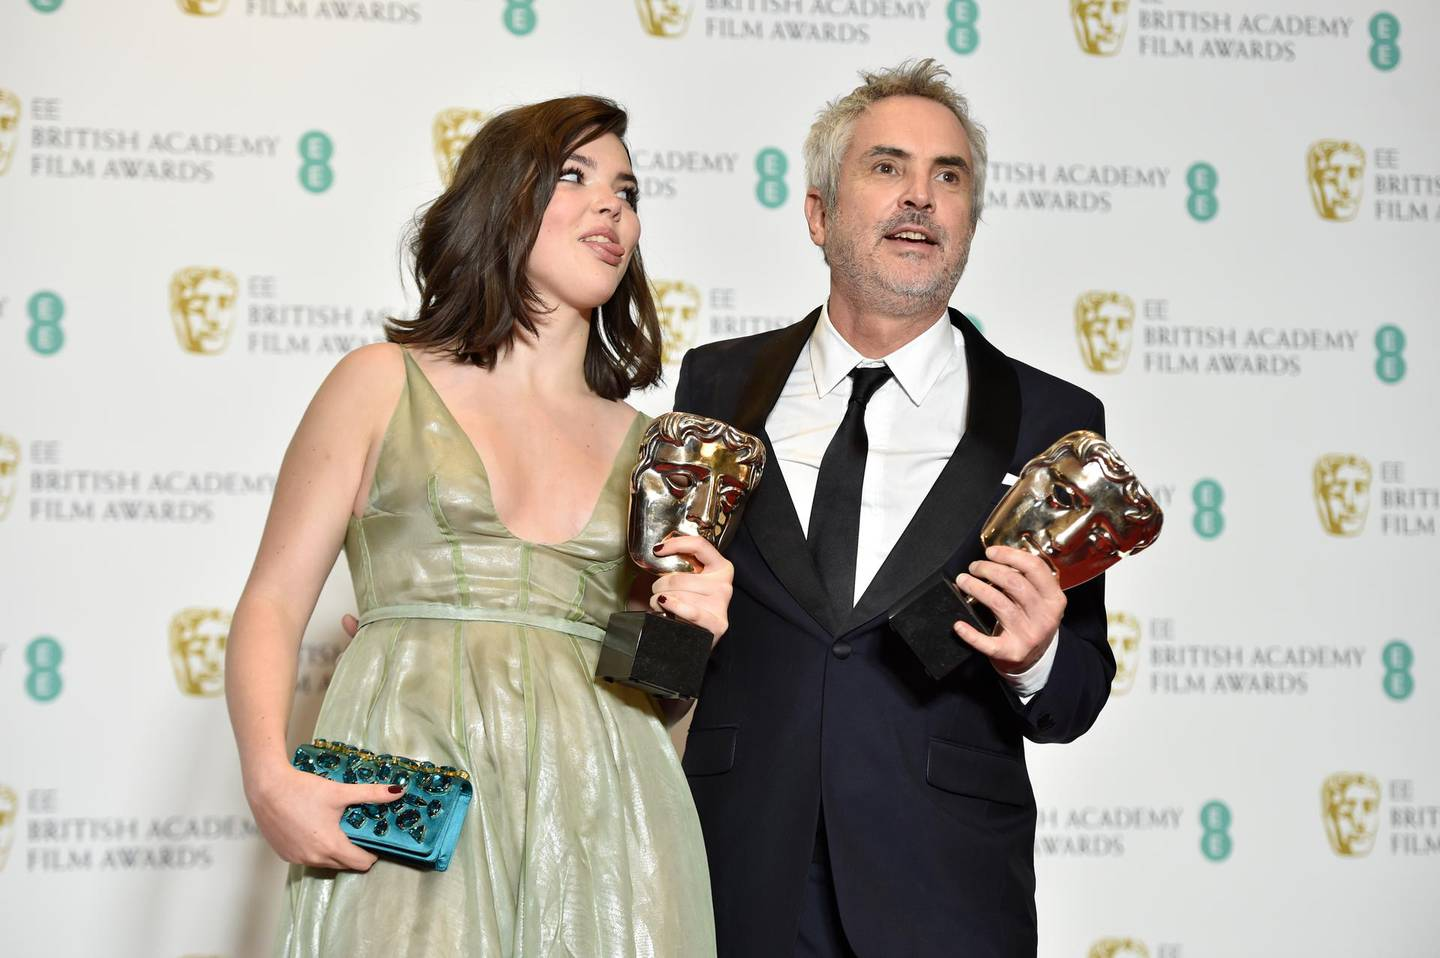 epa07360670 Mexican director Alfonso Cuaron (R) and his daughter Tessa pose with the awards for Best Film and Best Director for 'Roma' in the press room during the 72nd annual British Academy Film Awards at the Royal Albert Hall in London, Britain, 10 February 2019. The ceremony is hosted by the British Academy of Film and Television Arts (BAFTA).  EPA/NIK HALLEN